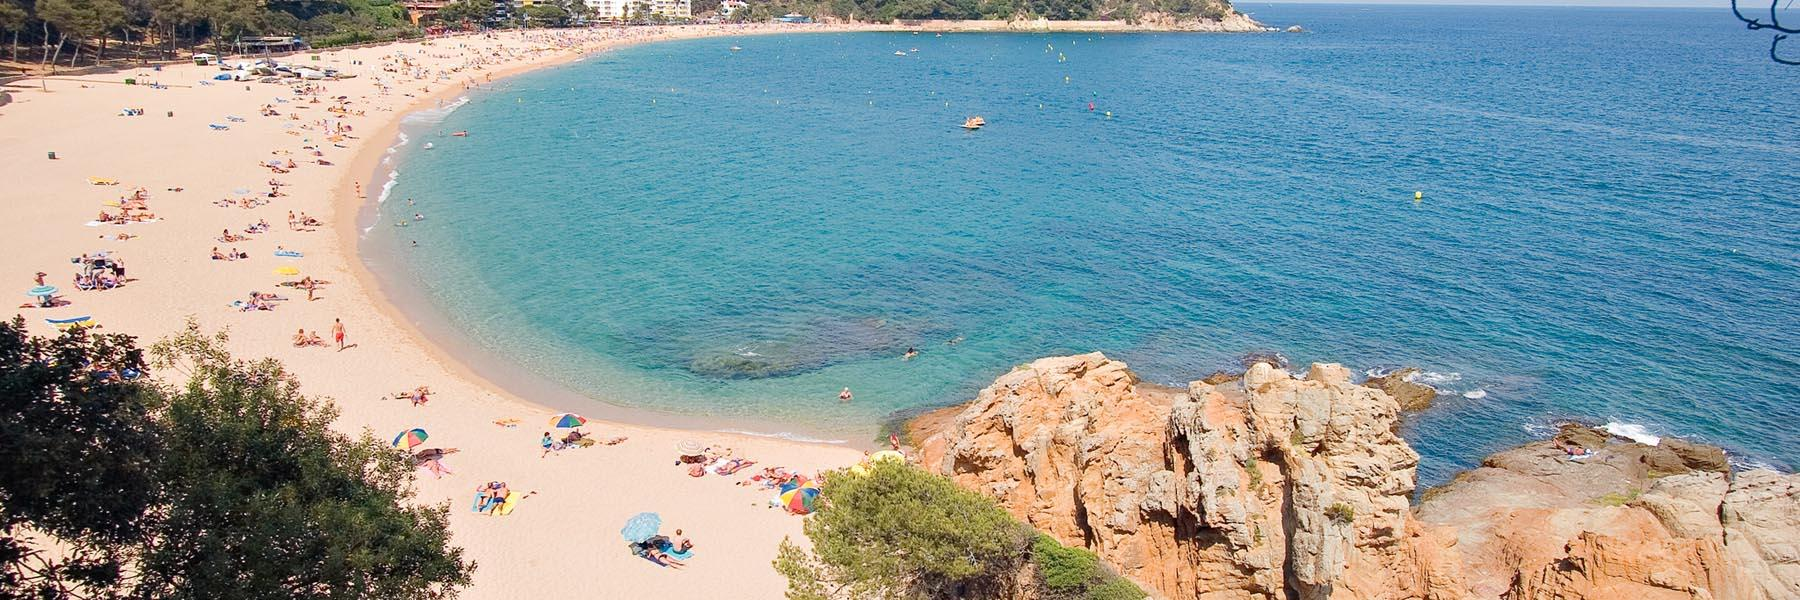 Lloret de Mar holidays